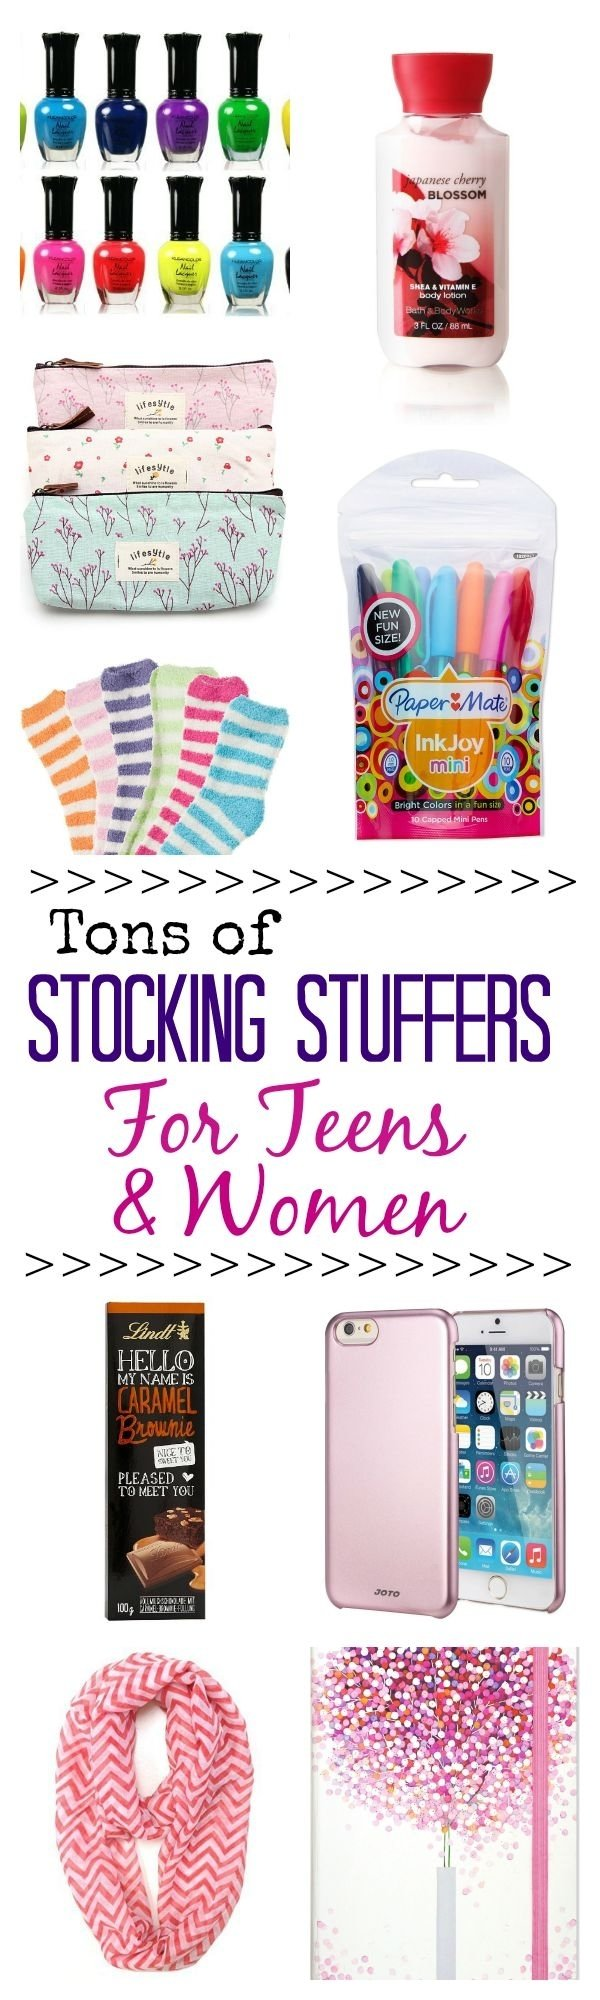 10 Perfect Christmas List Ideas For Teenage Girls 30 best christmas images on pinterest gift ideas christmas gift 2020